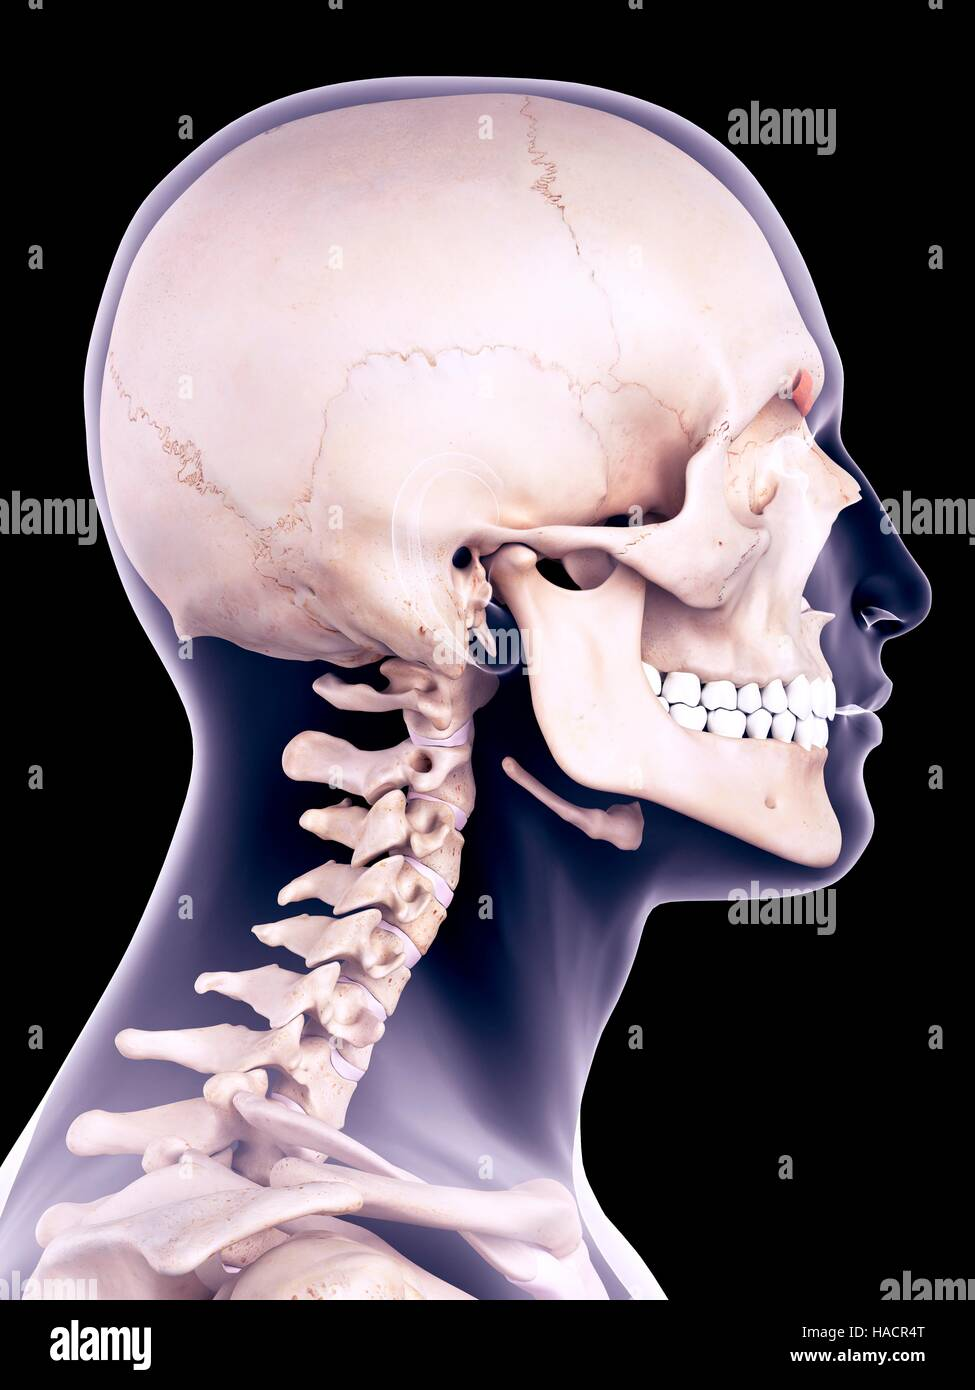 Medical accurate illustration of the corrugator supercilii muscle. - Stock Image